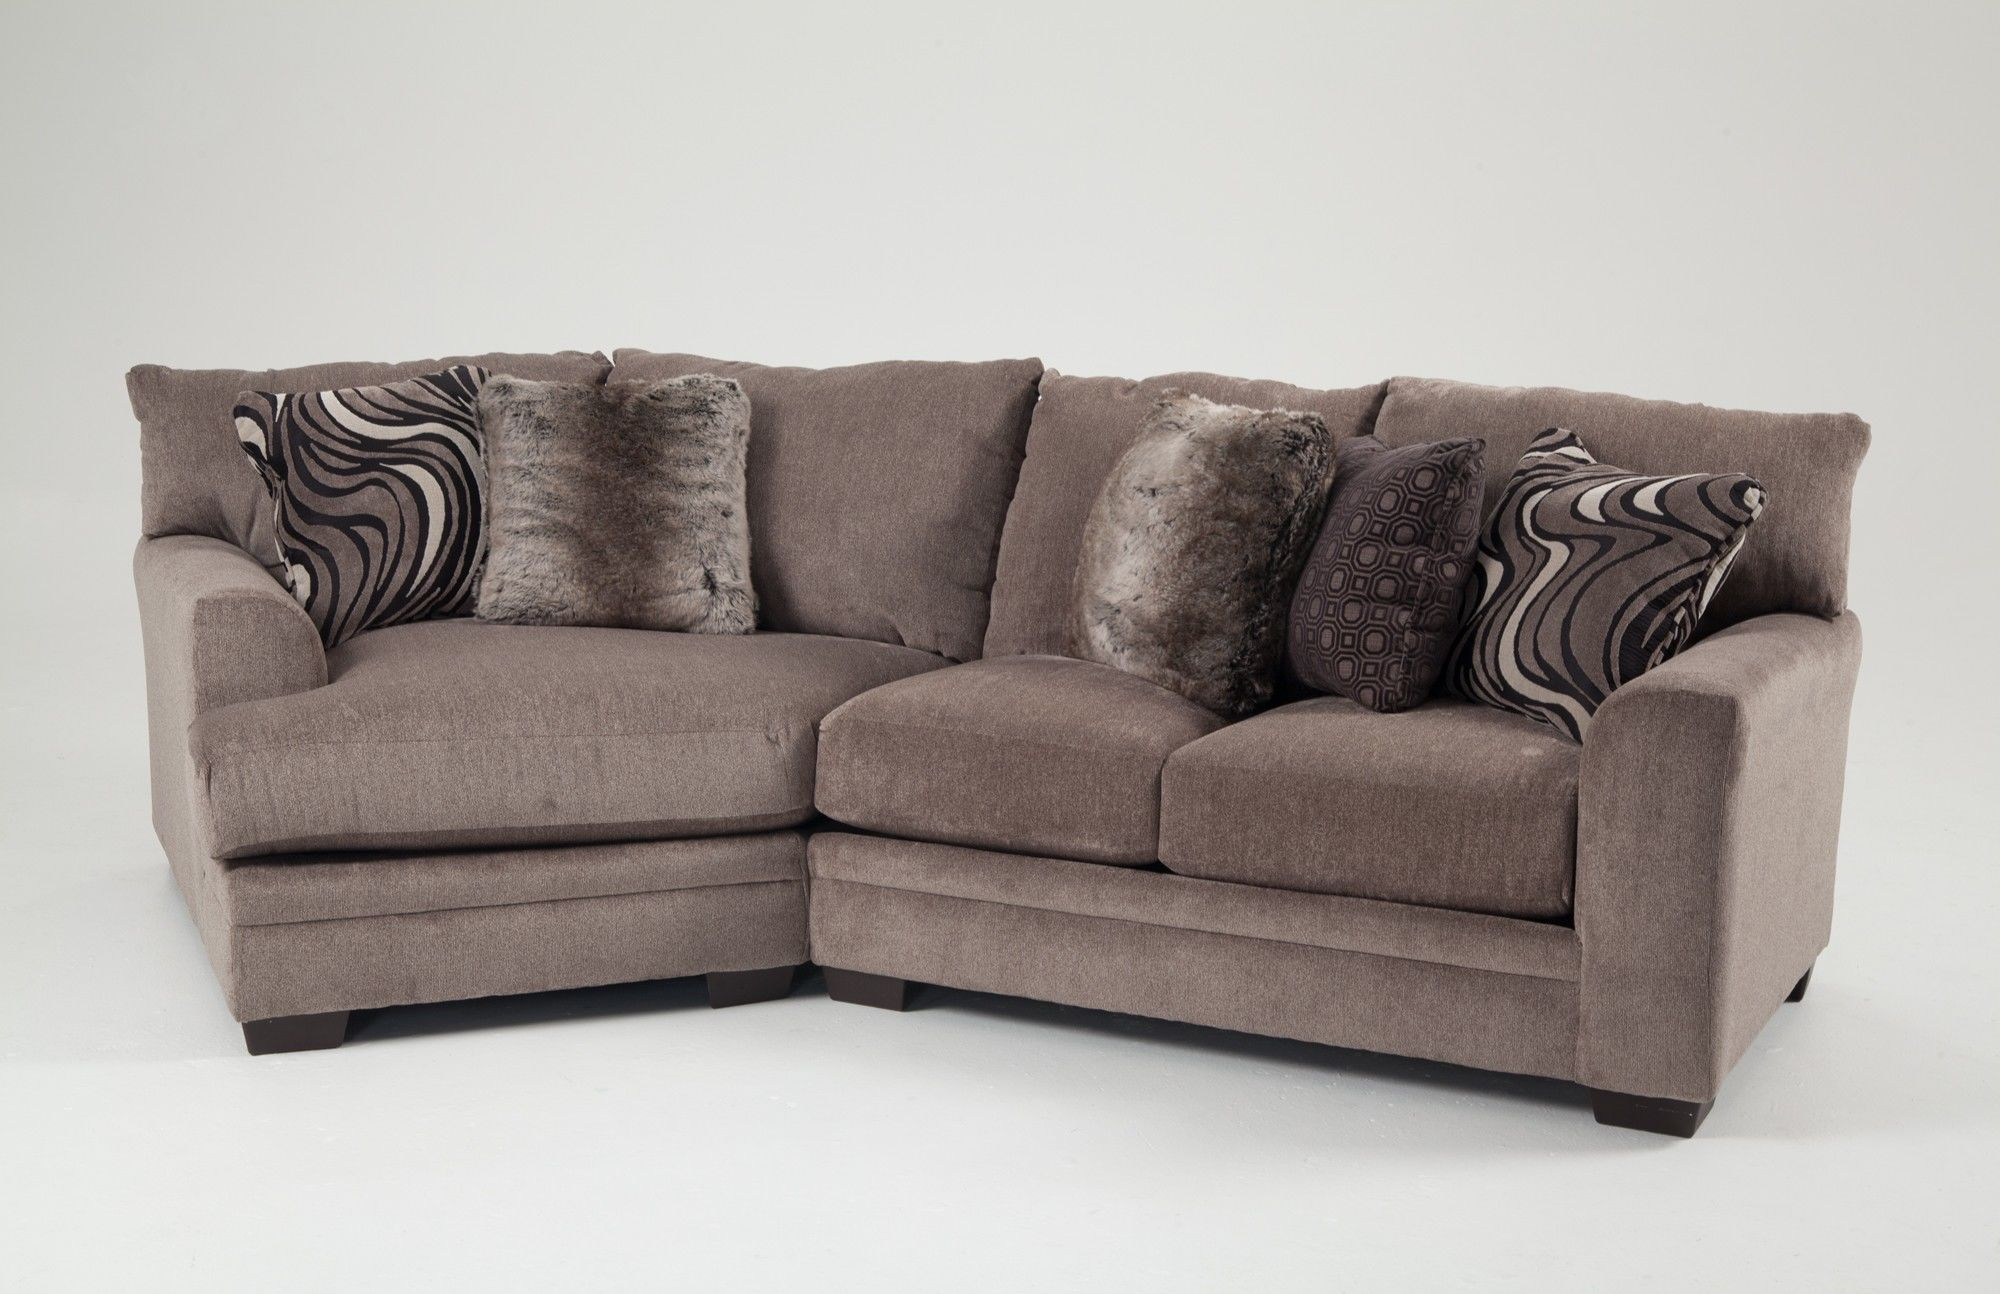 best bobs furniture leather sofa concept-Elegant Bobs Furniture Leather sofa Ideas